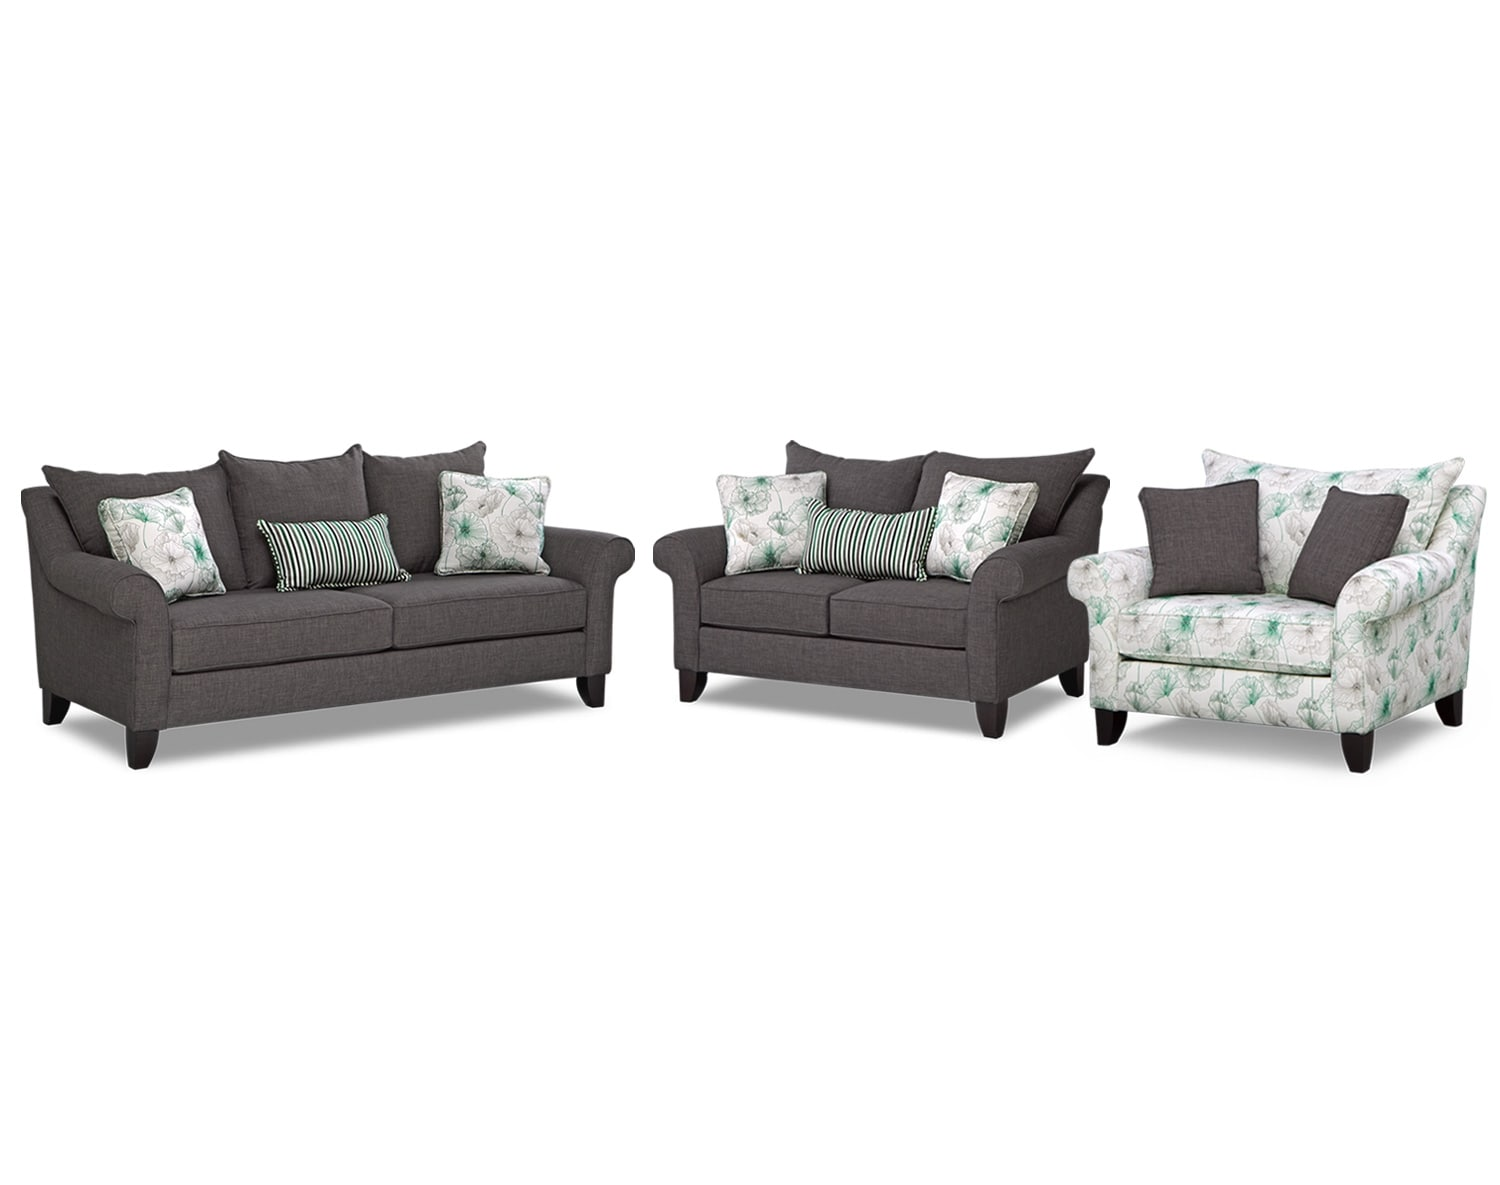 The Jasmine Collection - Charcoal